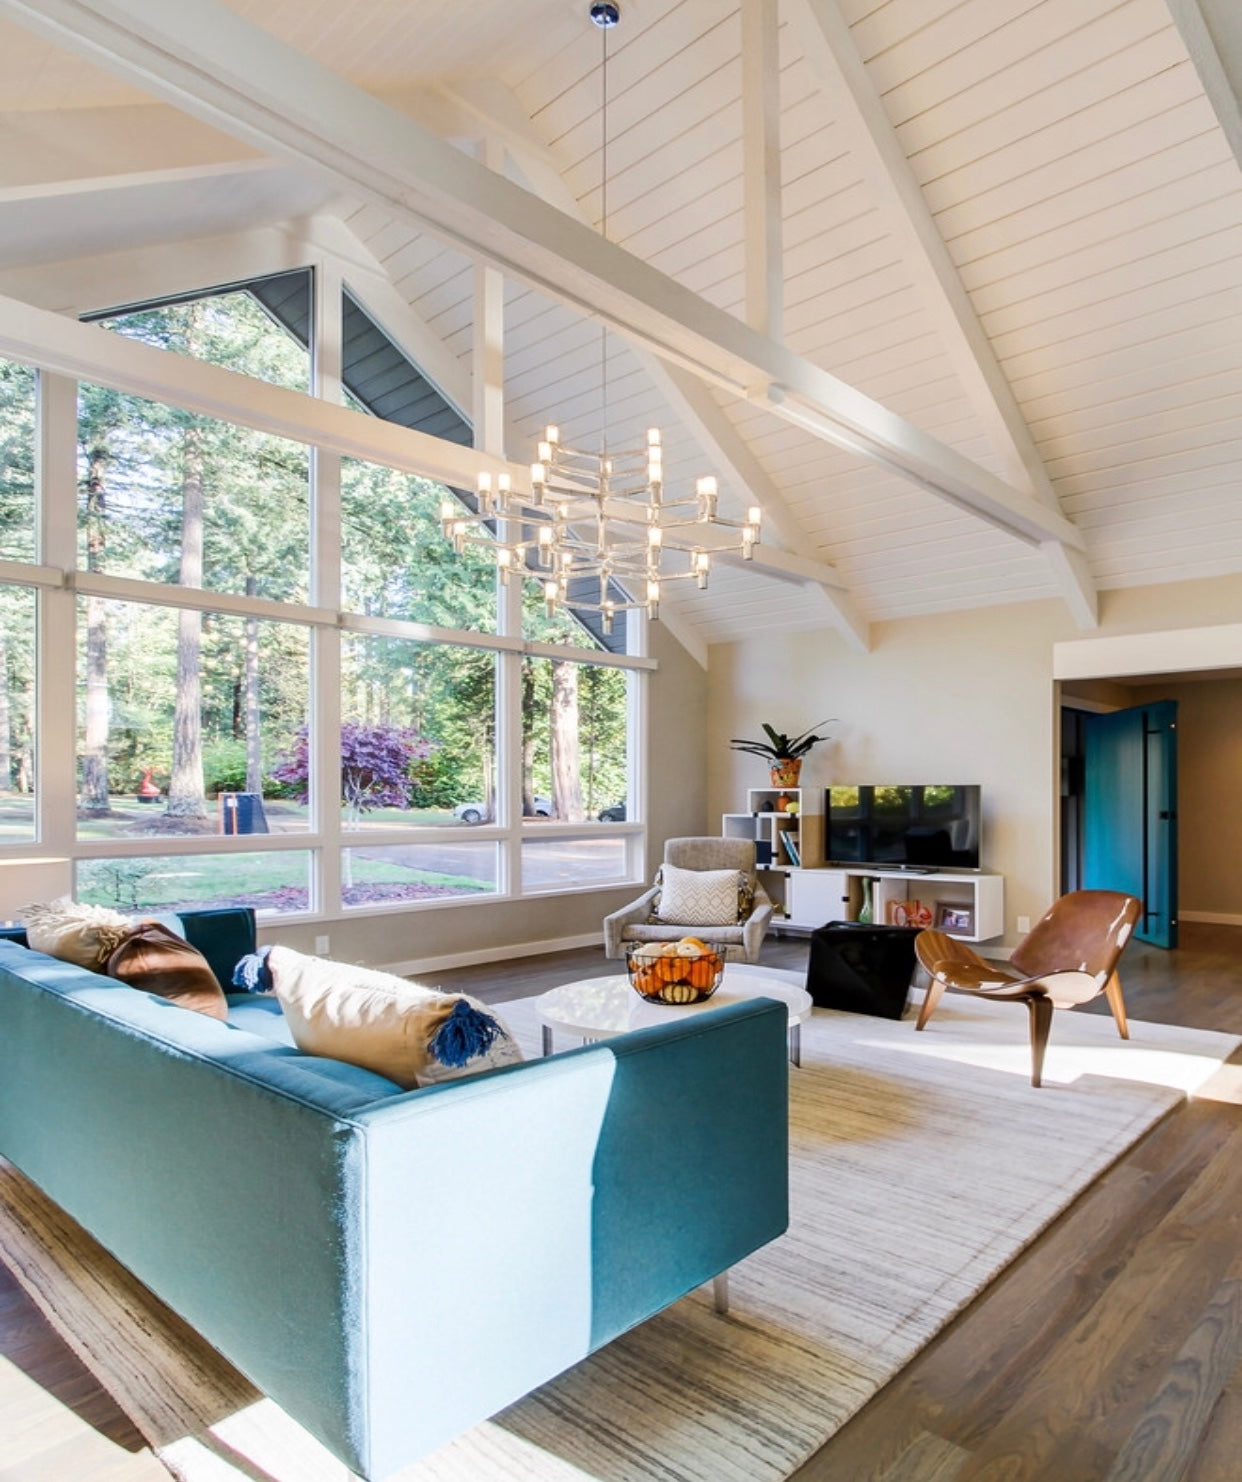 dwell mid-century modern home interior design